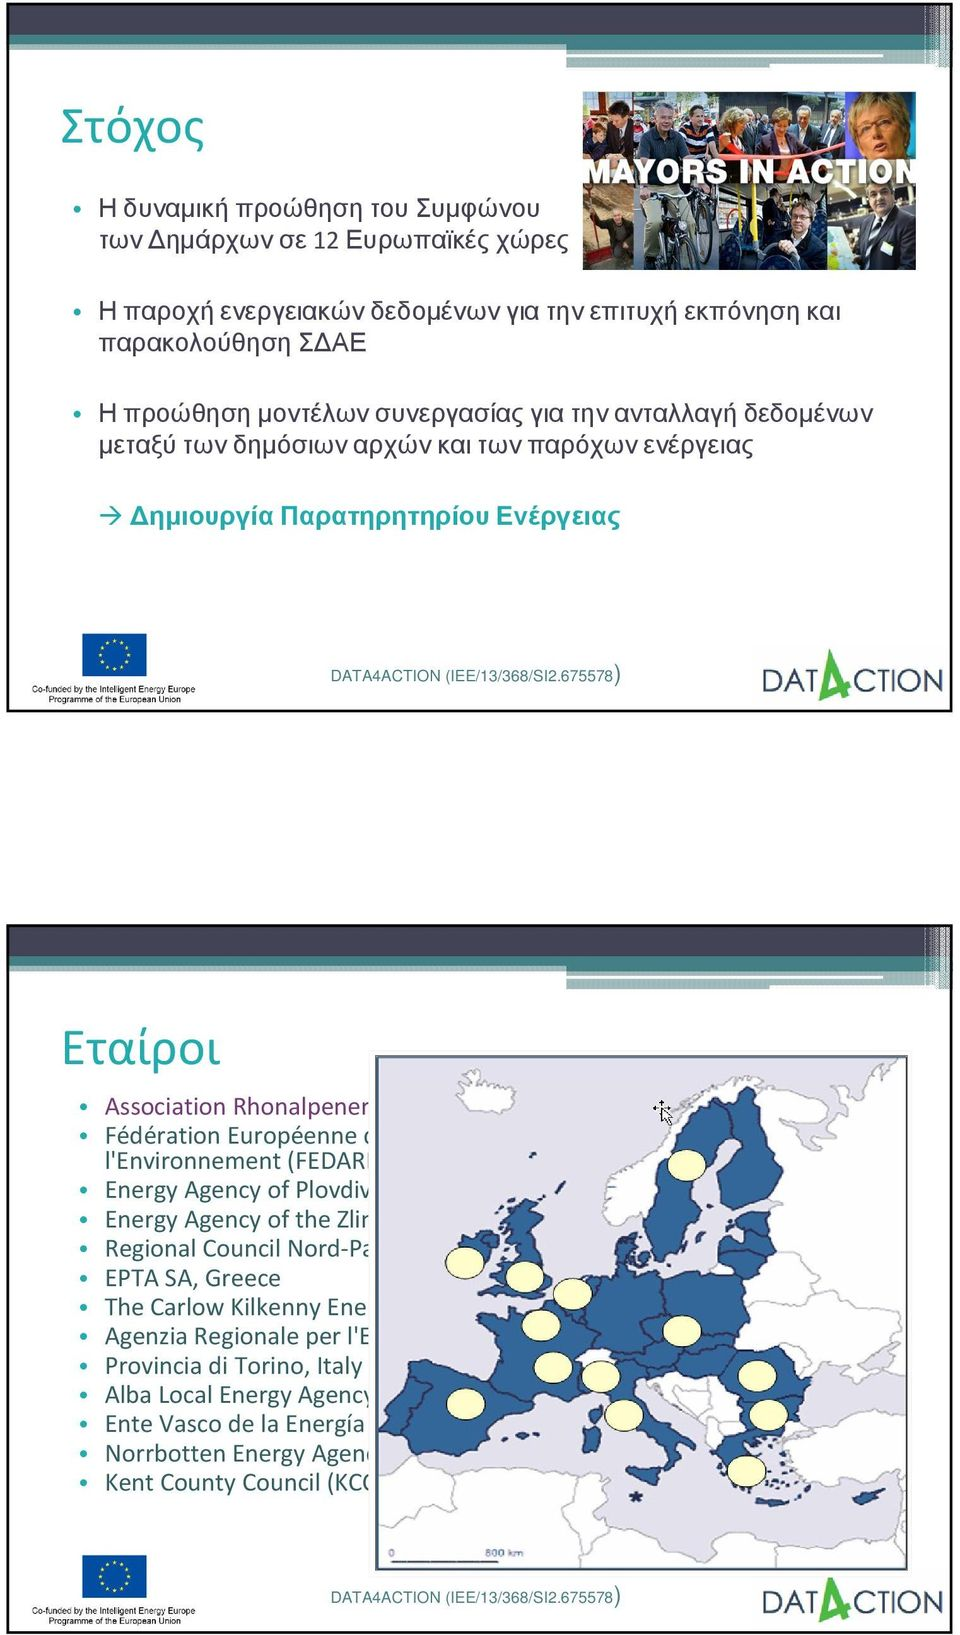 Agences Régionales de l'energie et de l'environnement (FEDARENE), Belgium Energy Agency of Plovdiv (EAP), Bulgaria Energy Agency of the Zlin Region, Czech Republic Regional Council Nord-Pas de Calais